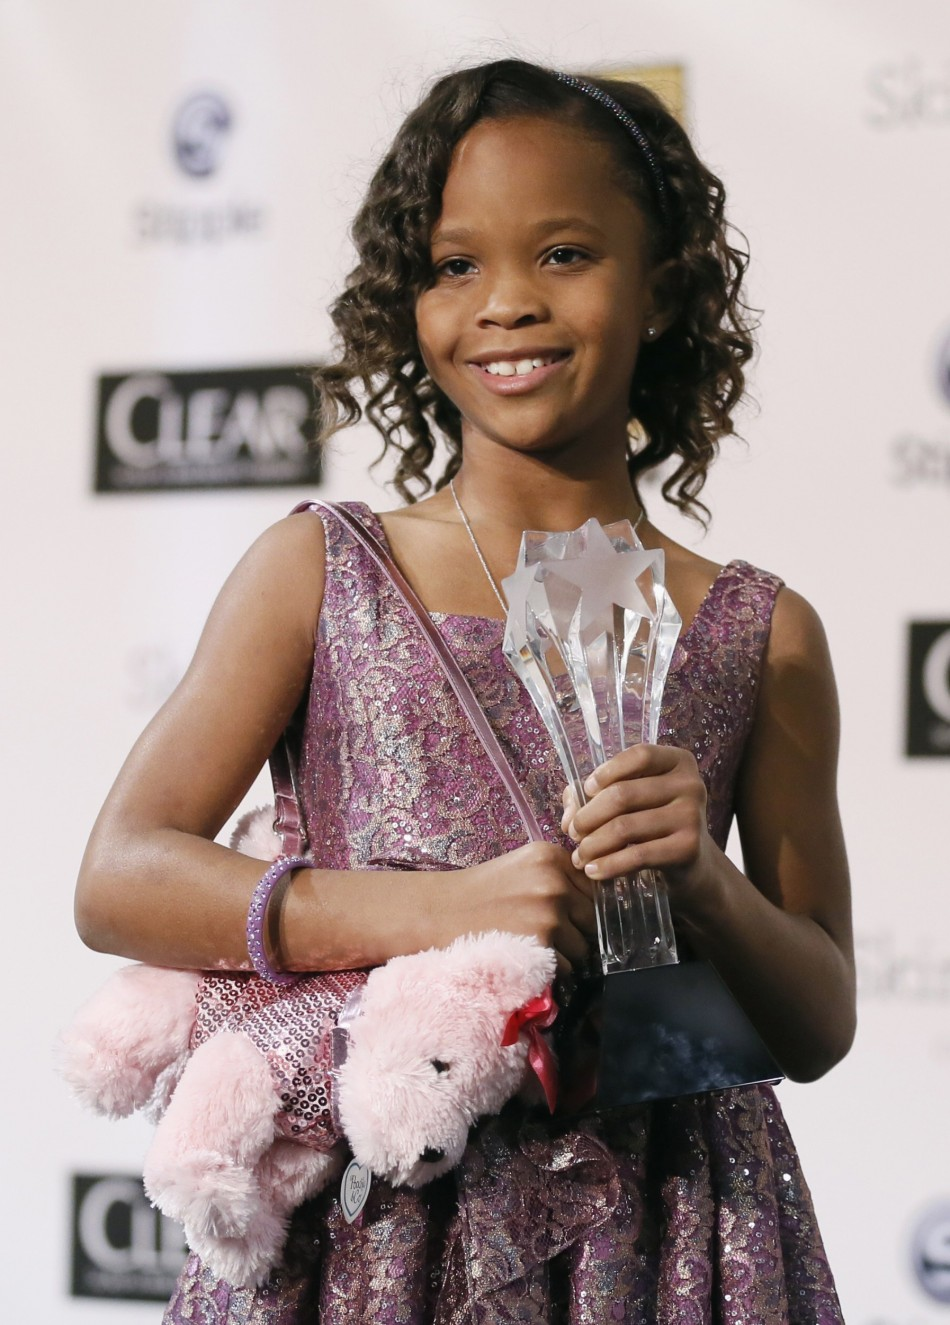 Quvenzhane Wallis accepts the award for Best Young Actor/Actress for her role in